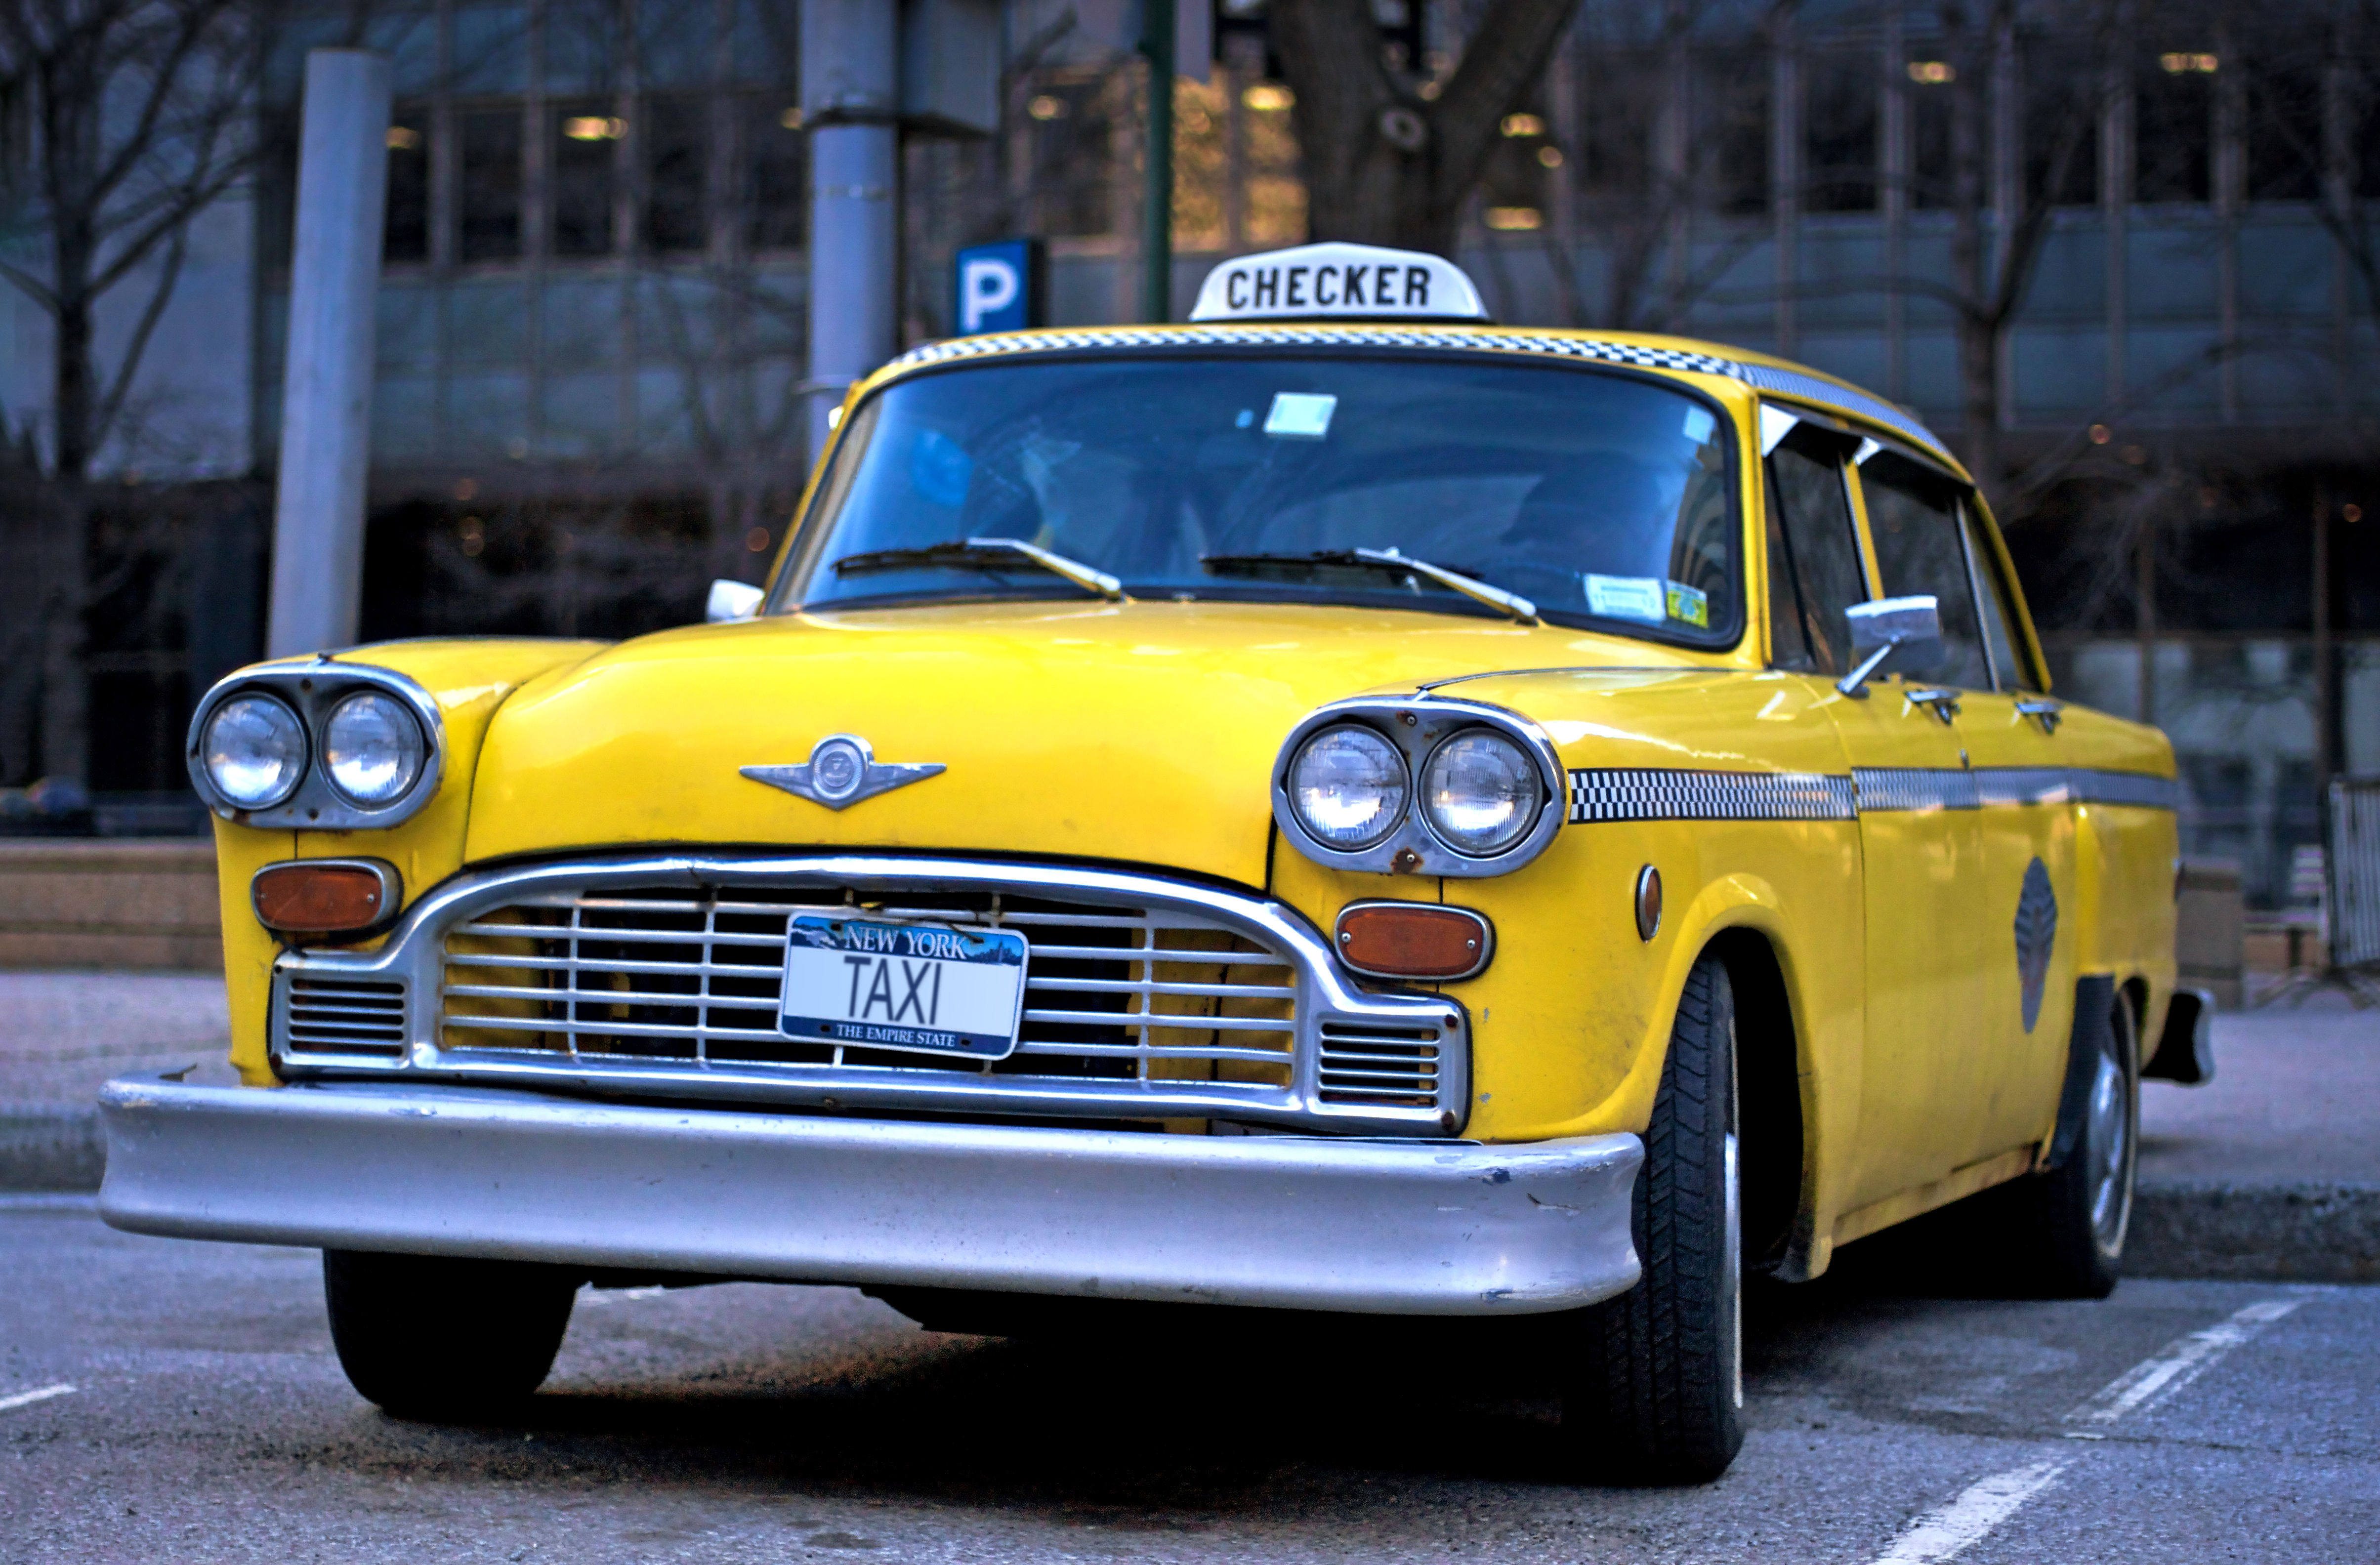 Image result for images taxi